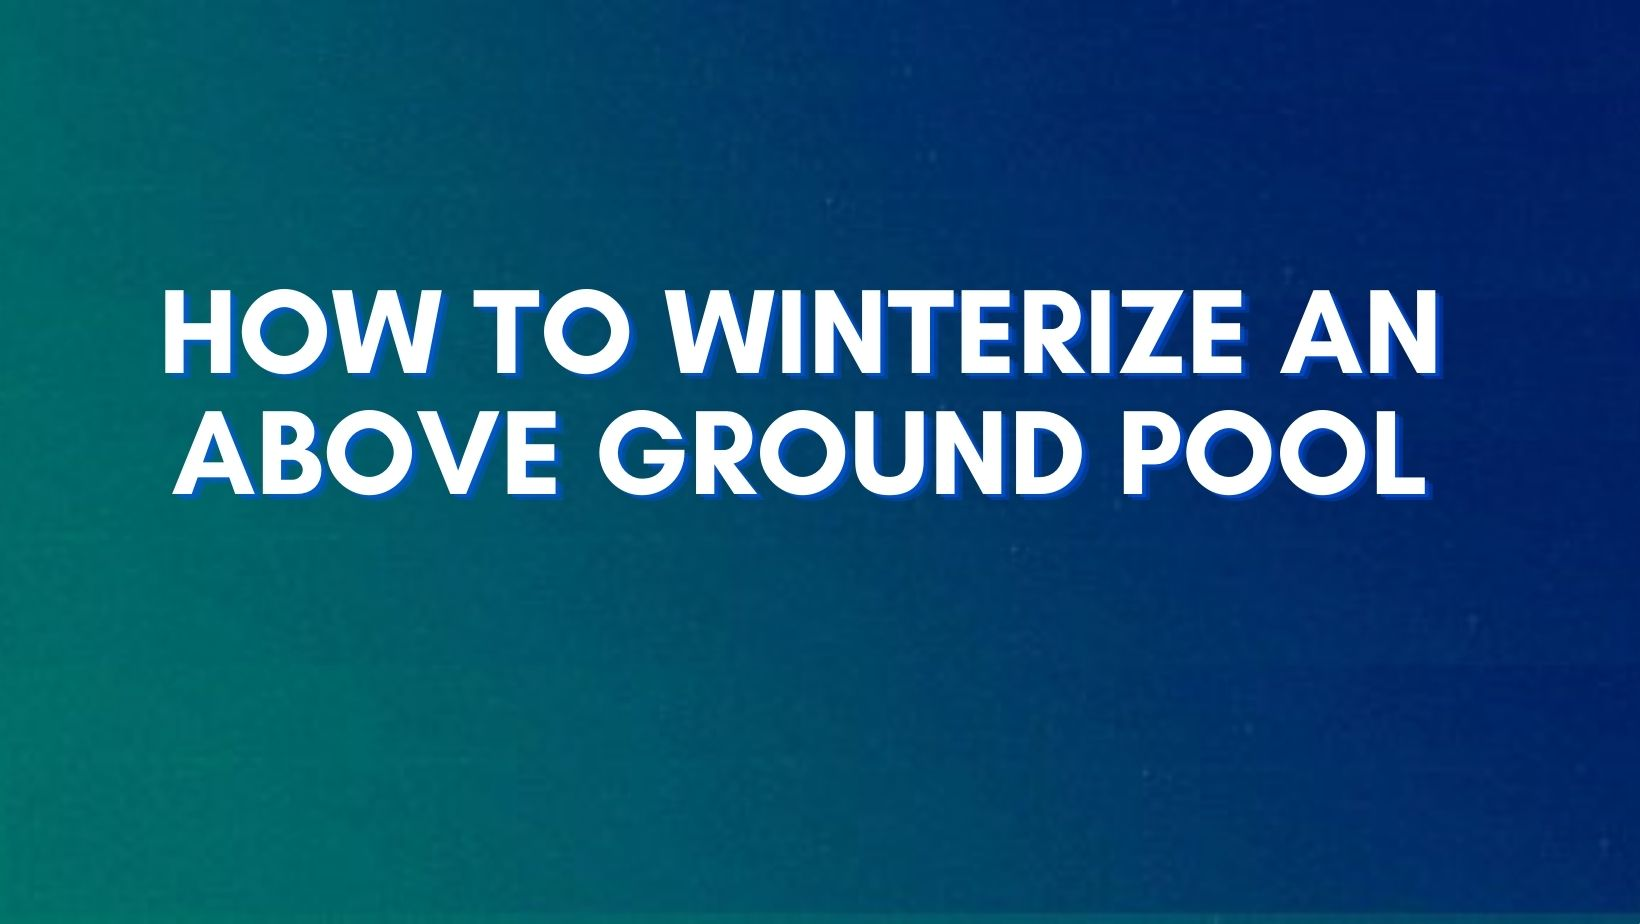 How to Close an above ground pool in winter season